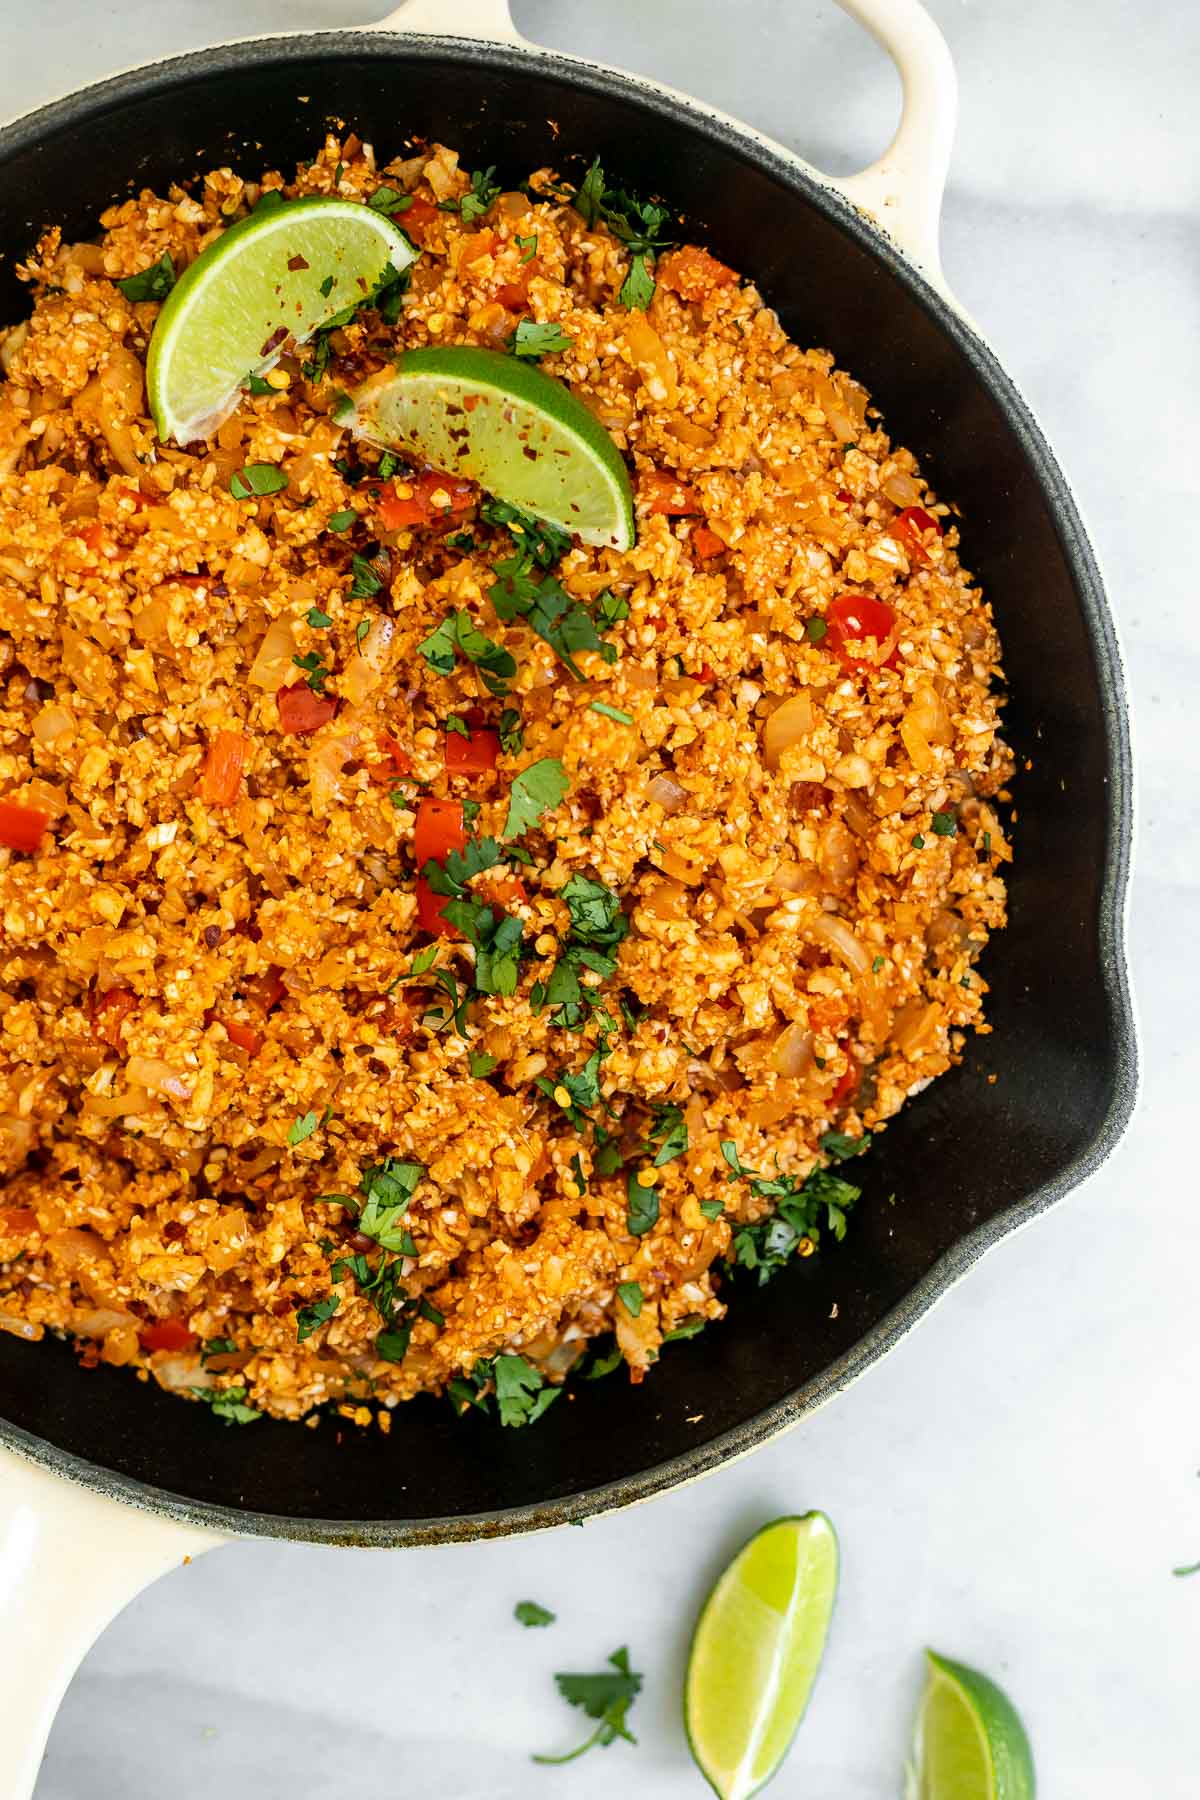 Up close image of the spanish cauliflower rice in a skillet to show texture.